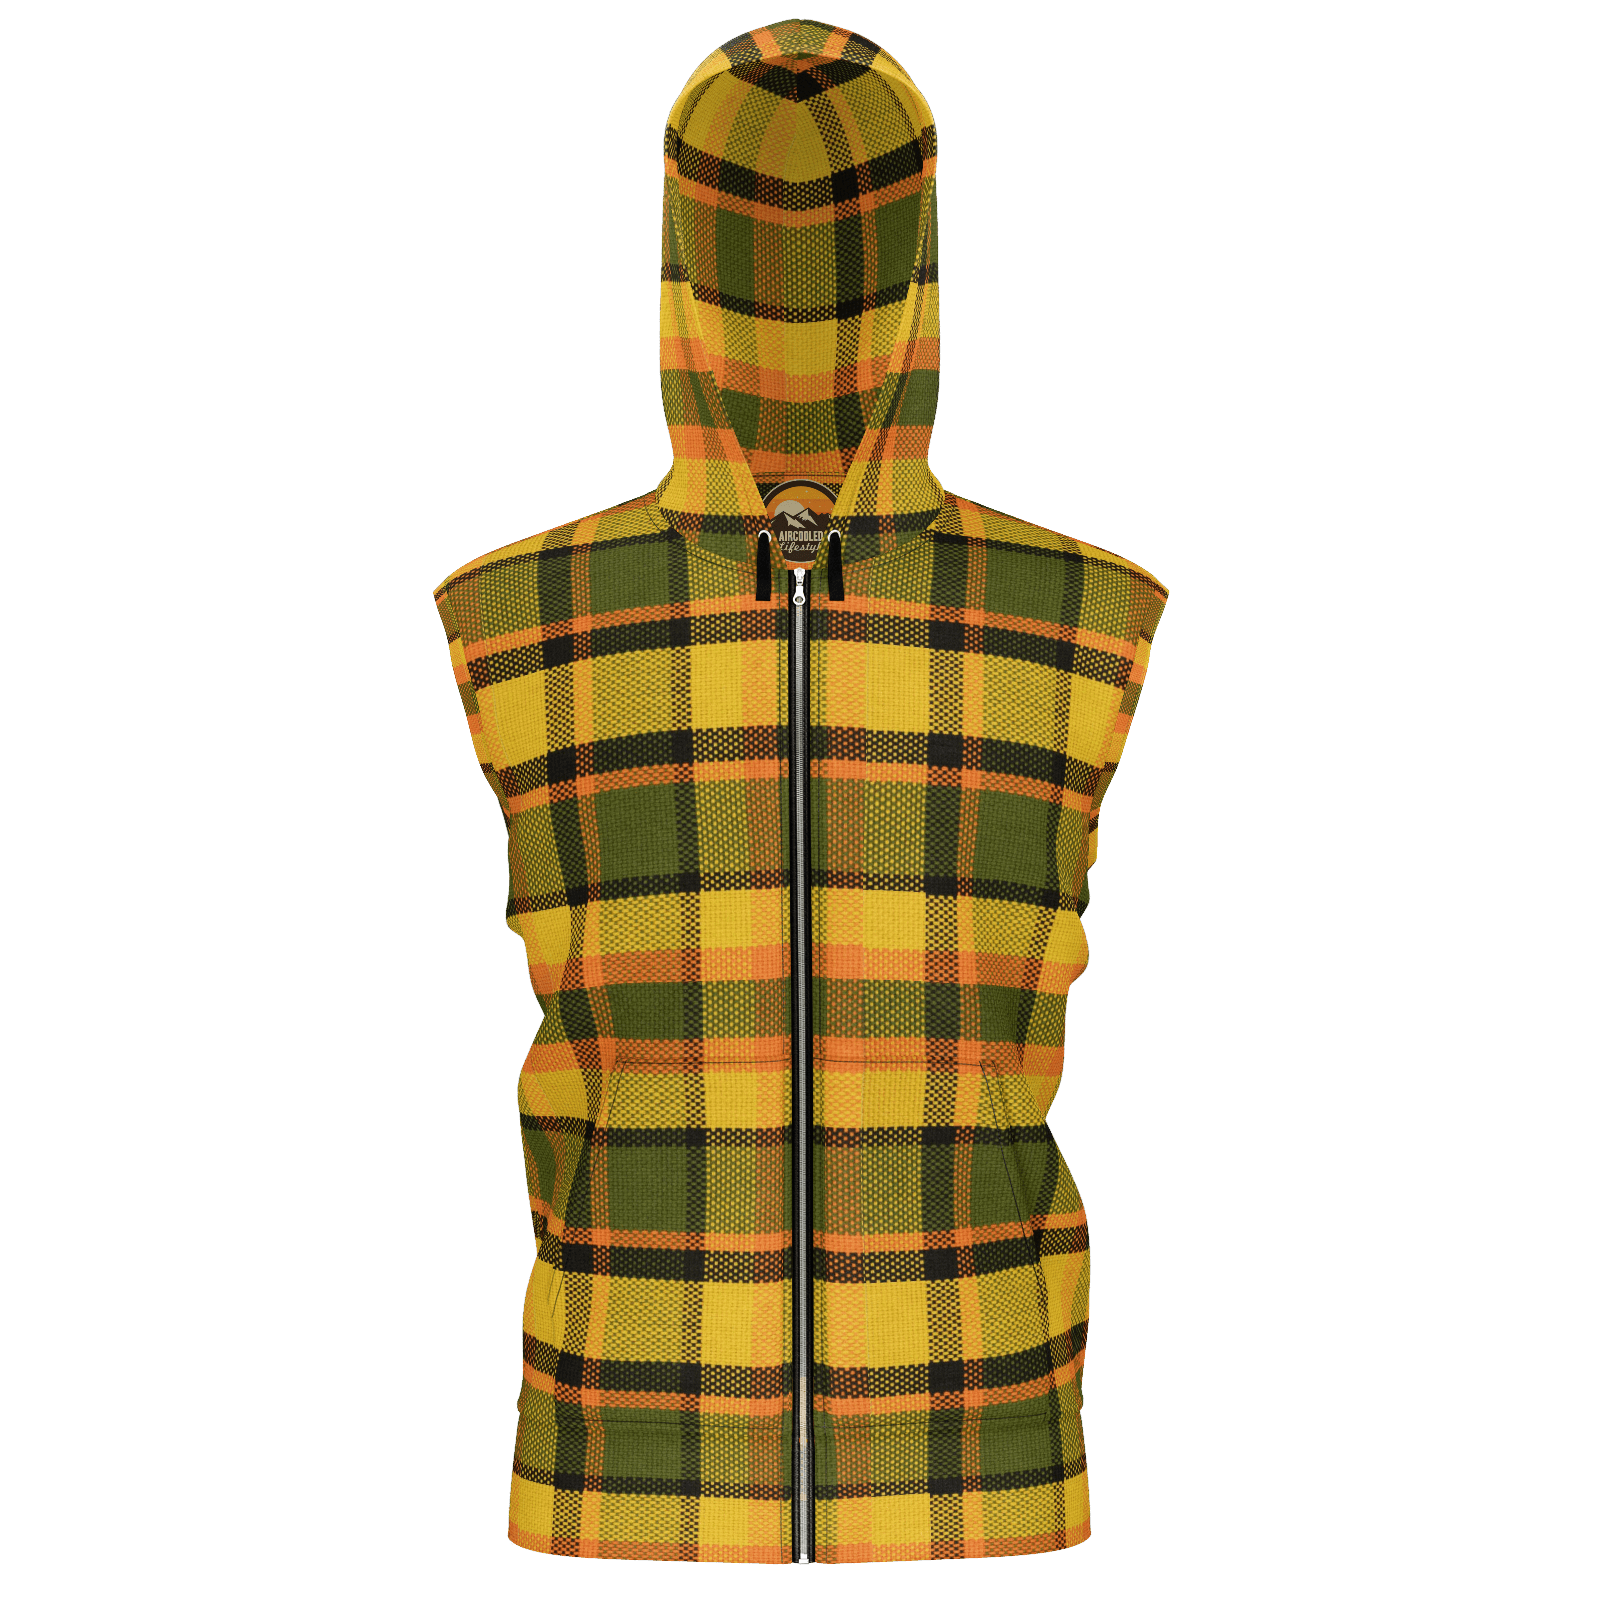 Retro Yellow Plaid Sleeveless Zip Hoodie